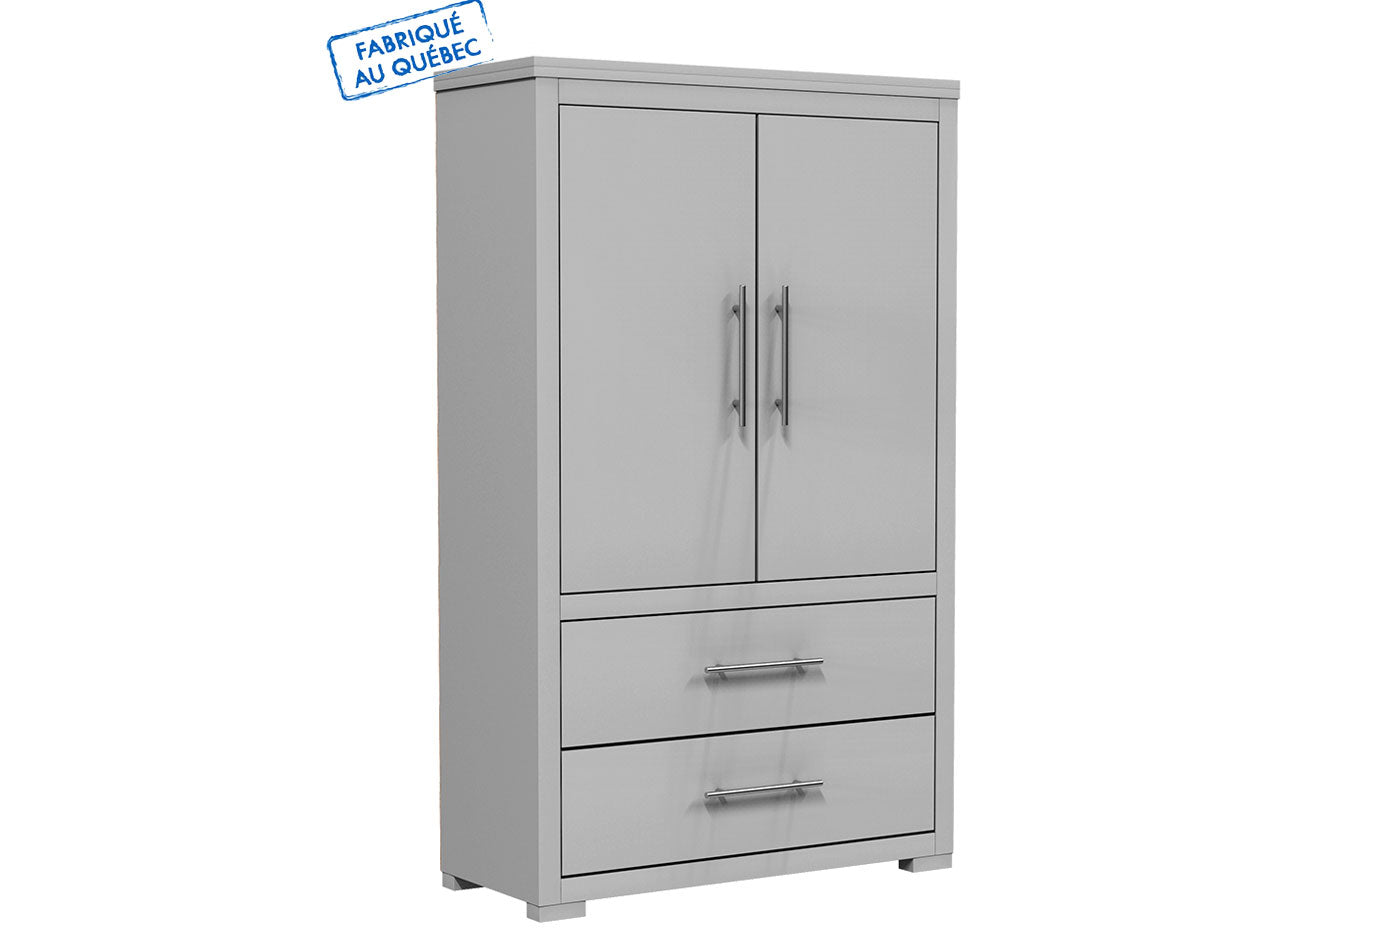 Barton wardrobe in wooden finish - Pale gray